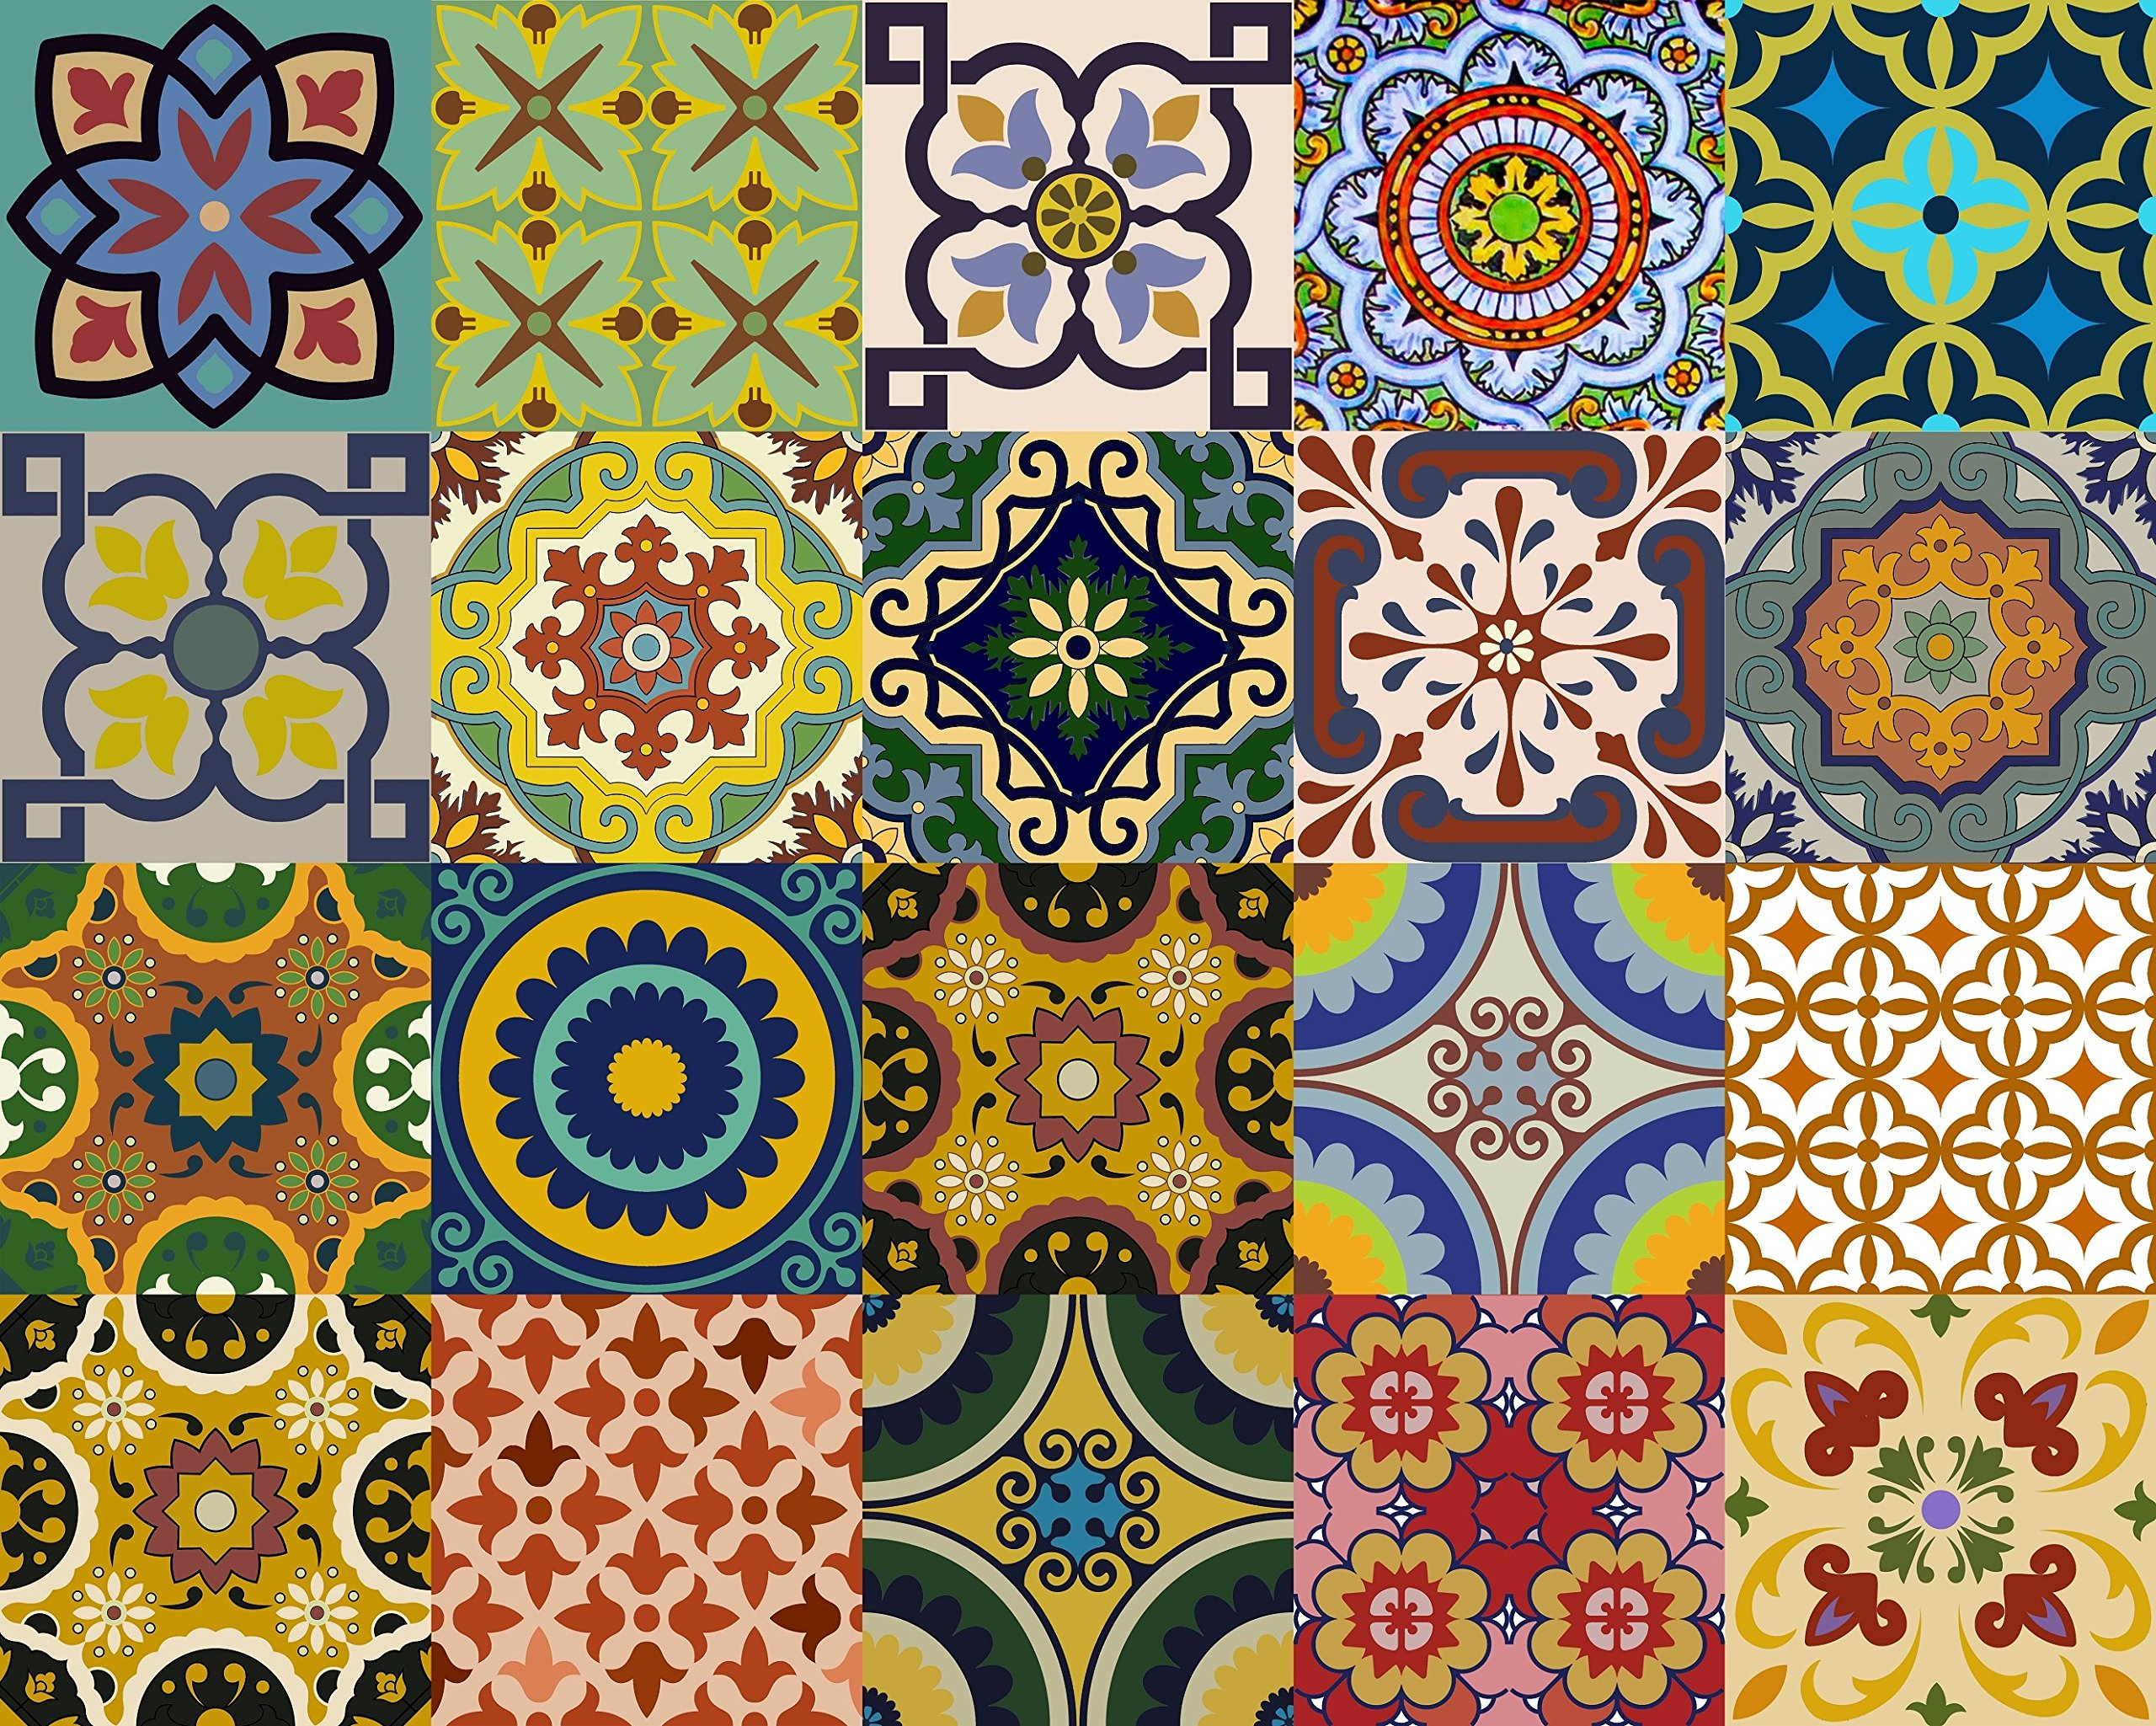 - Backsplash Tile Stickers 24 PC Set Traditional Talavera Tiles